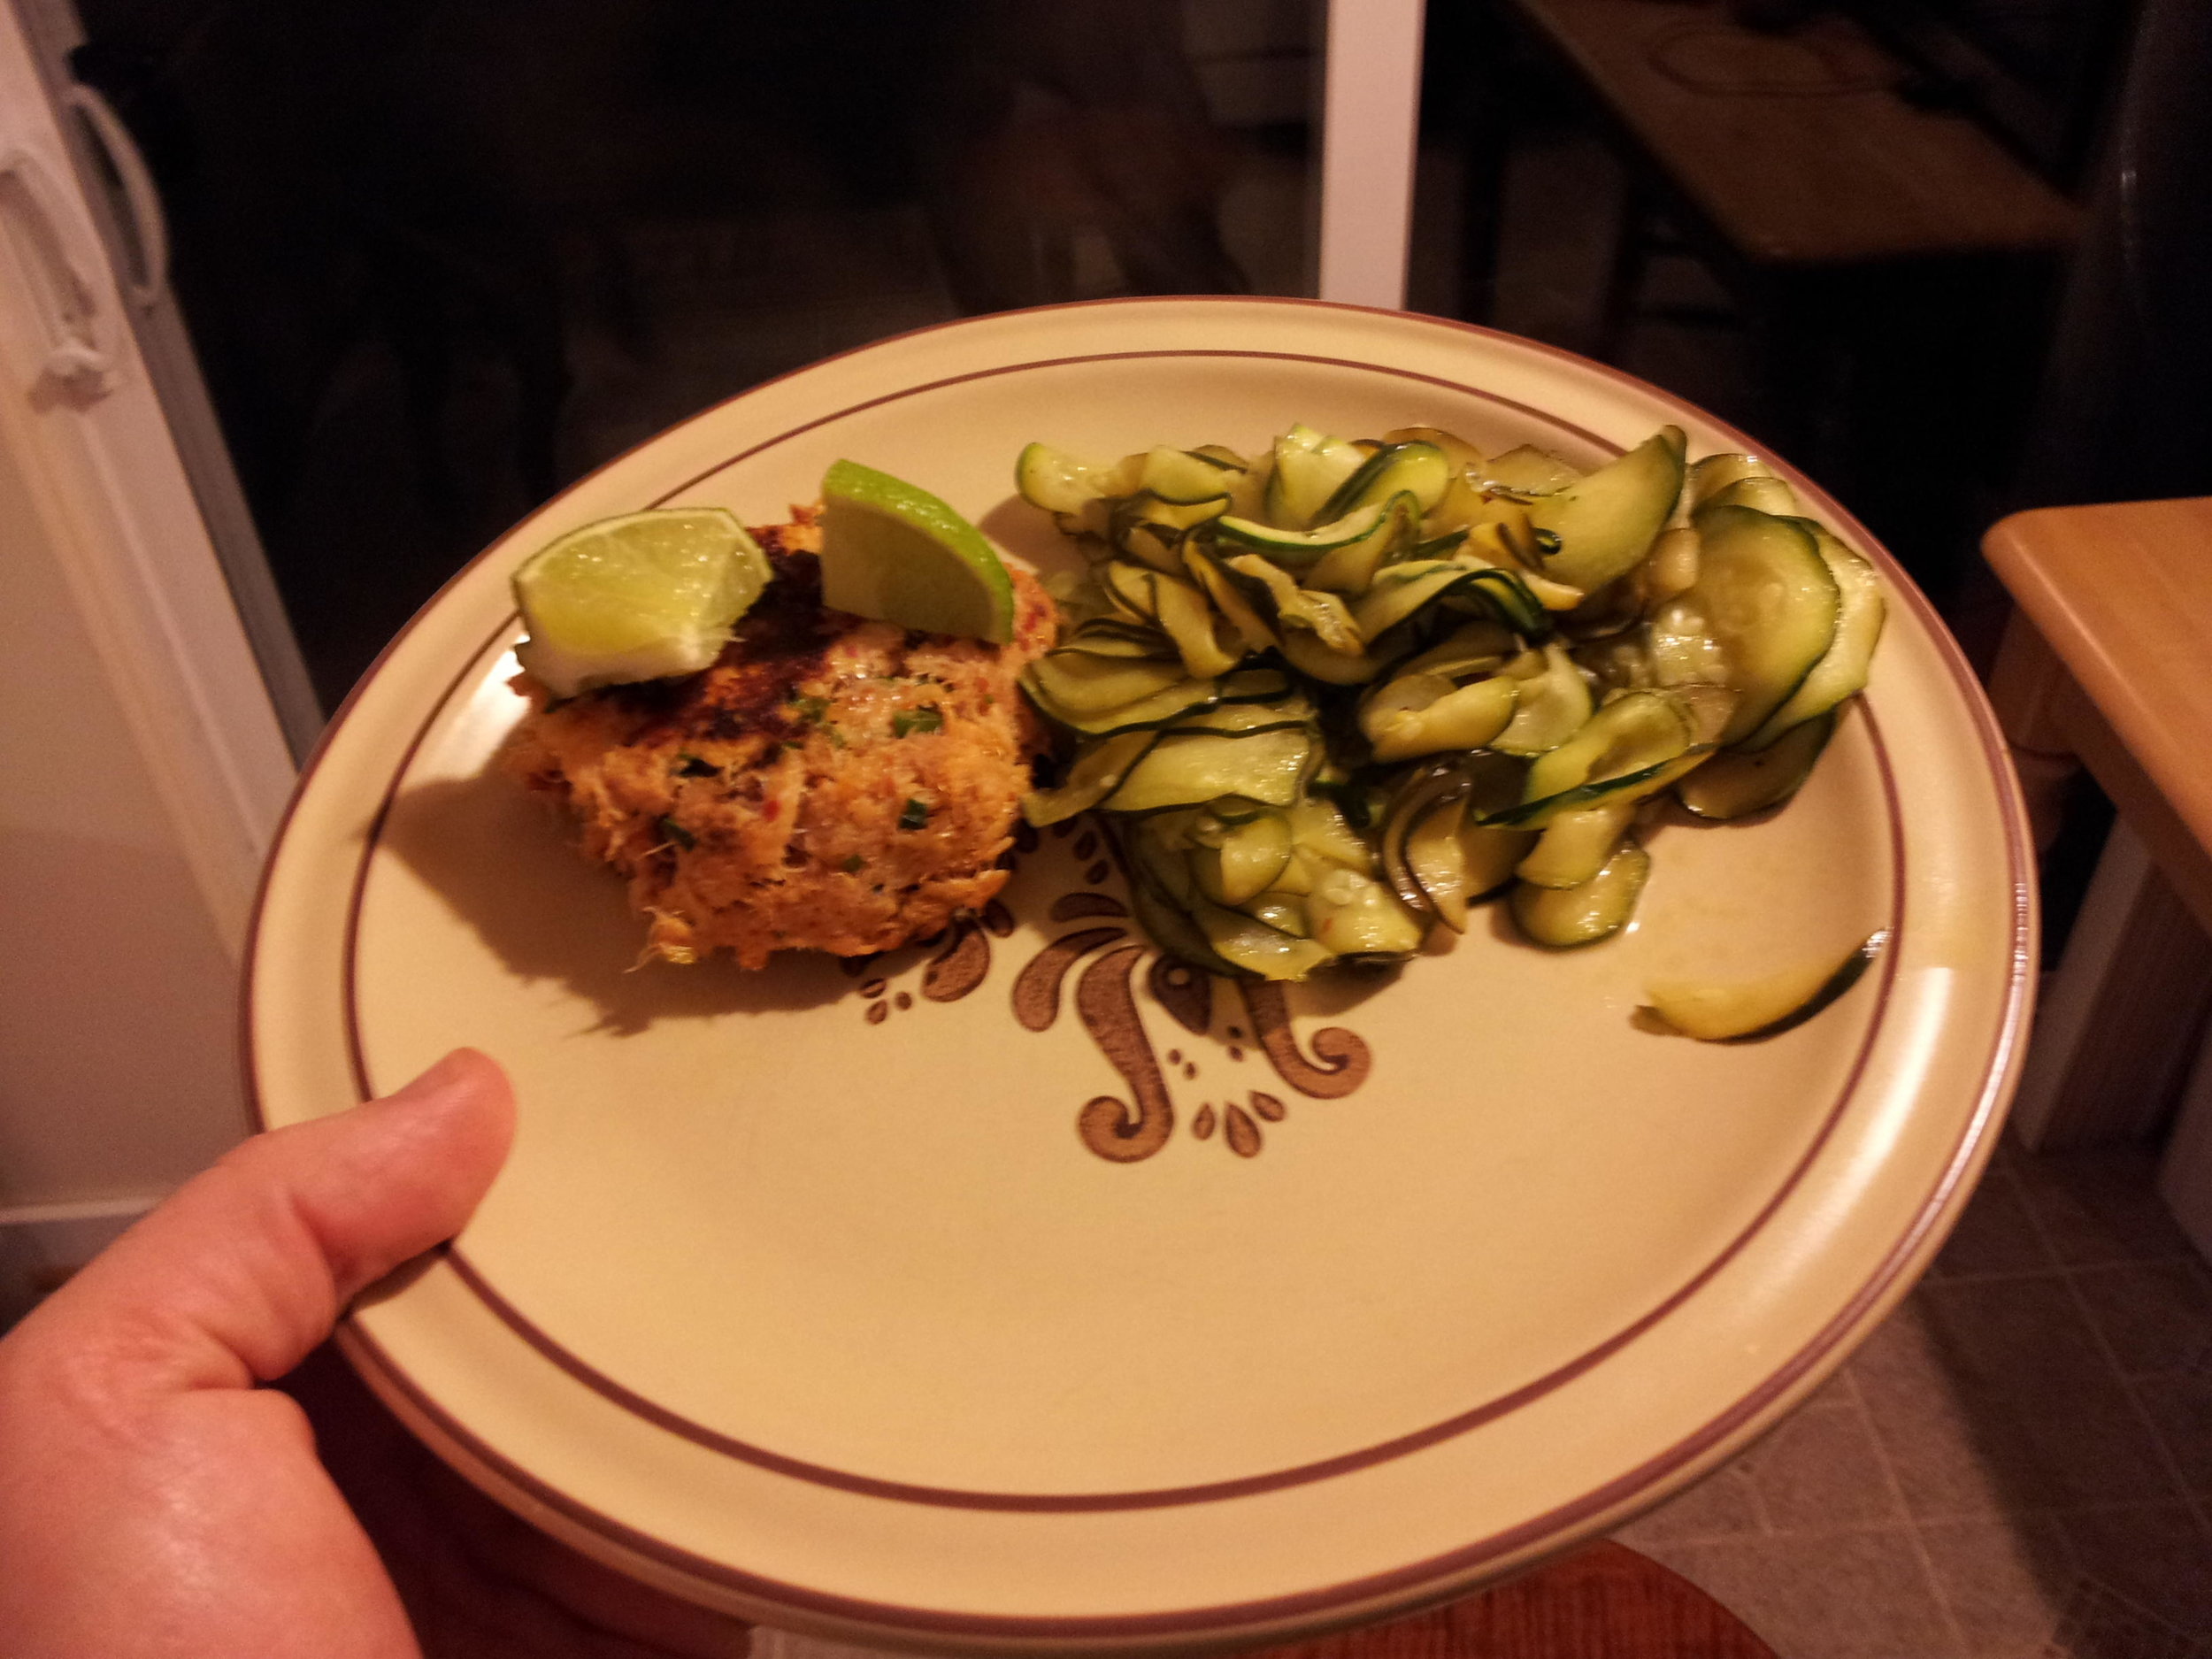 Crab Cakes with Zucchini side